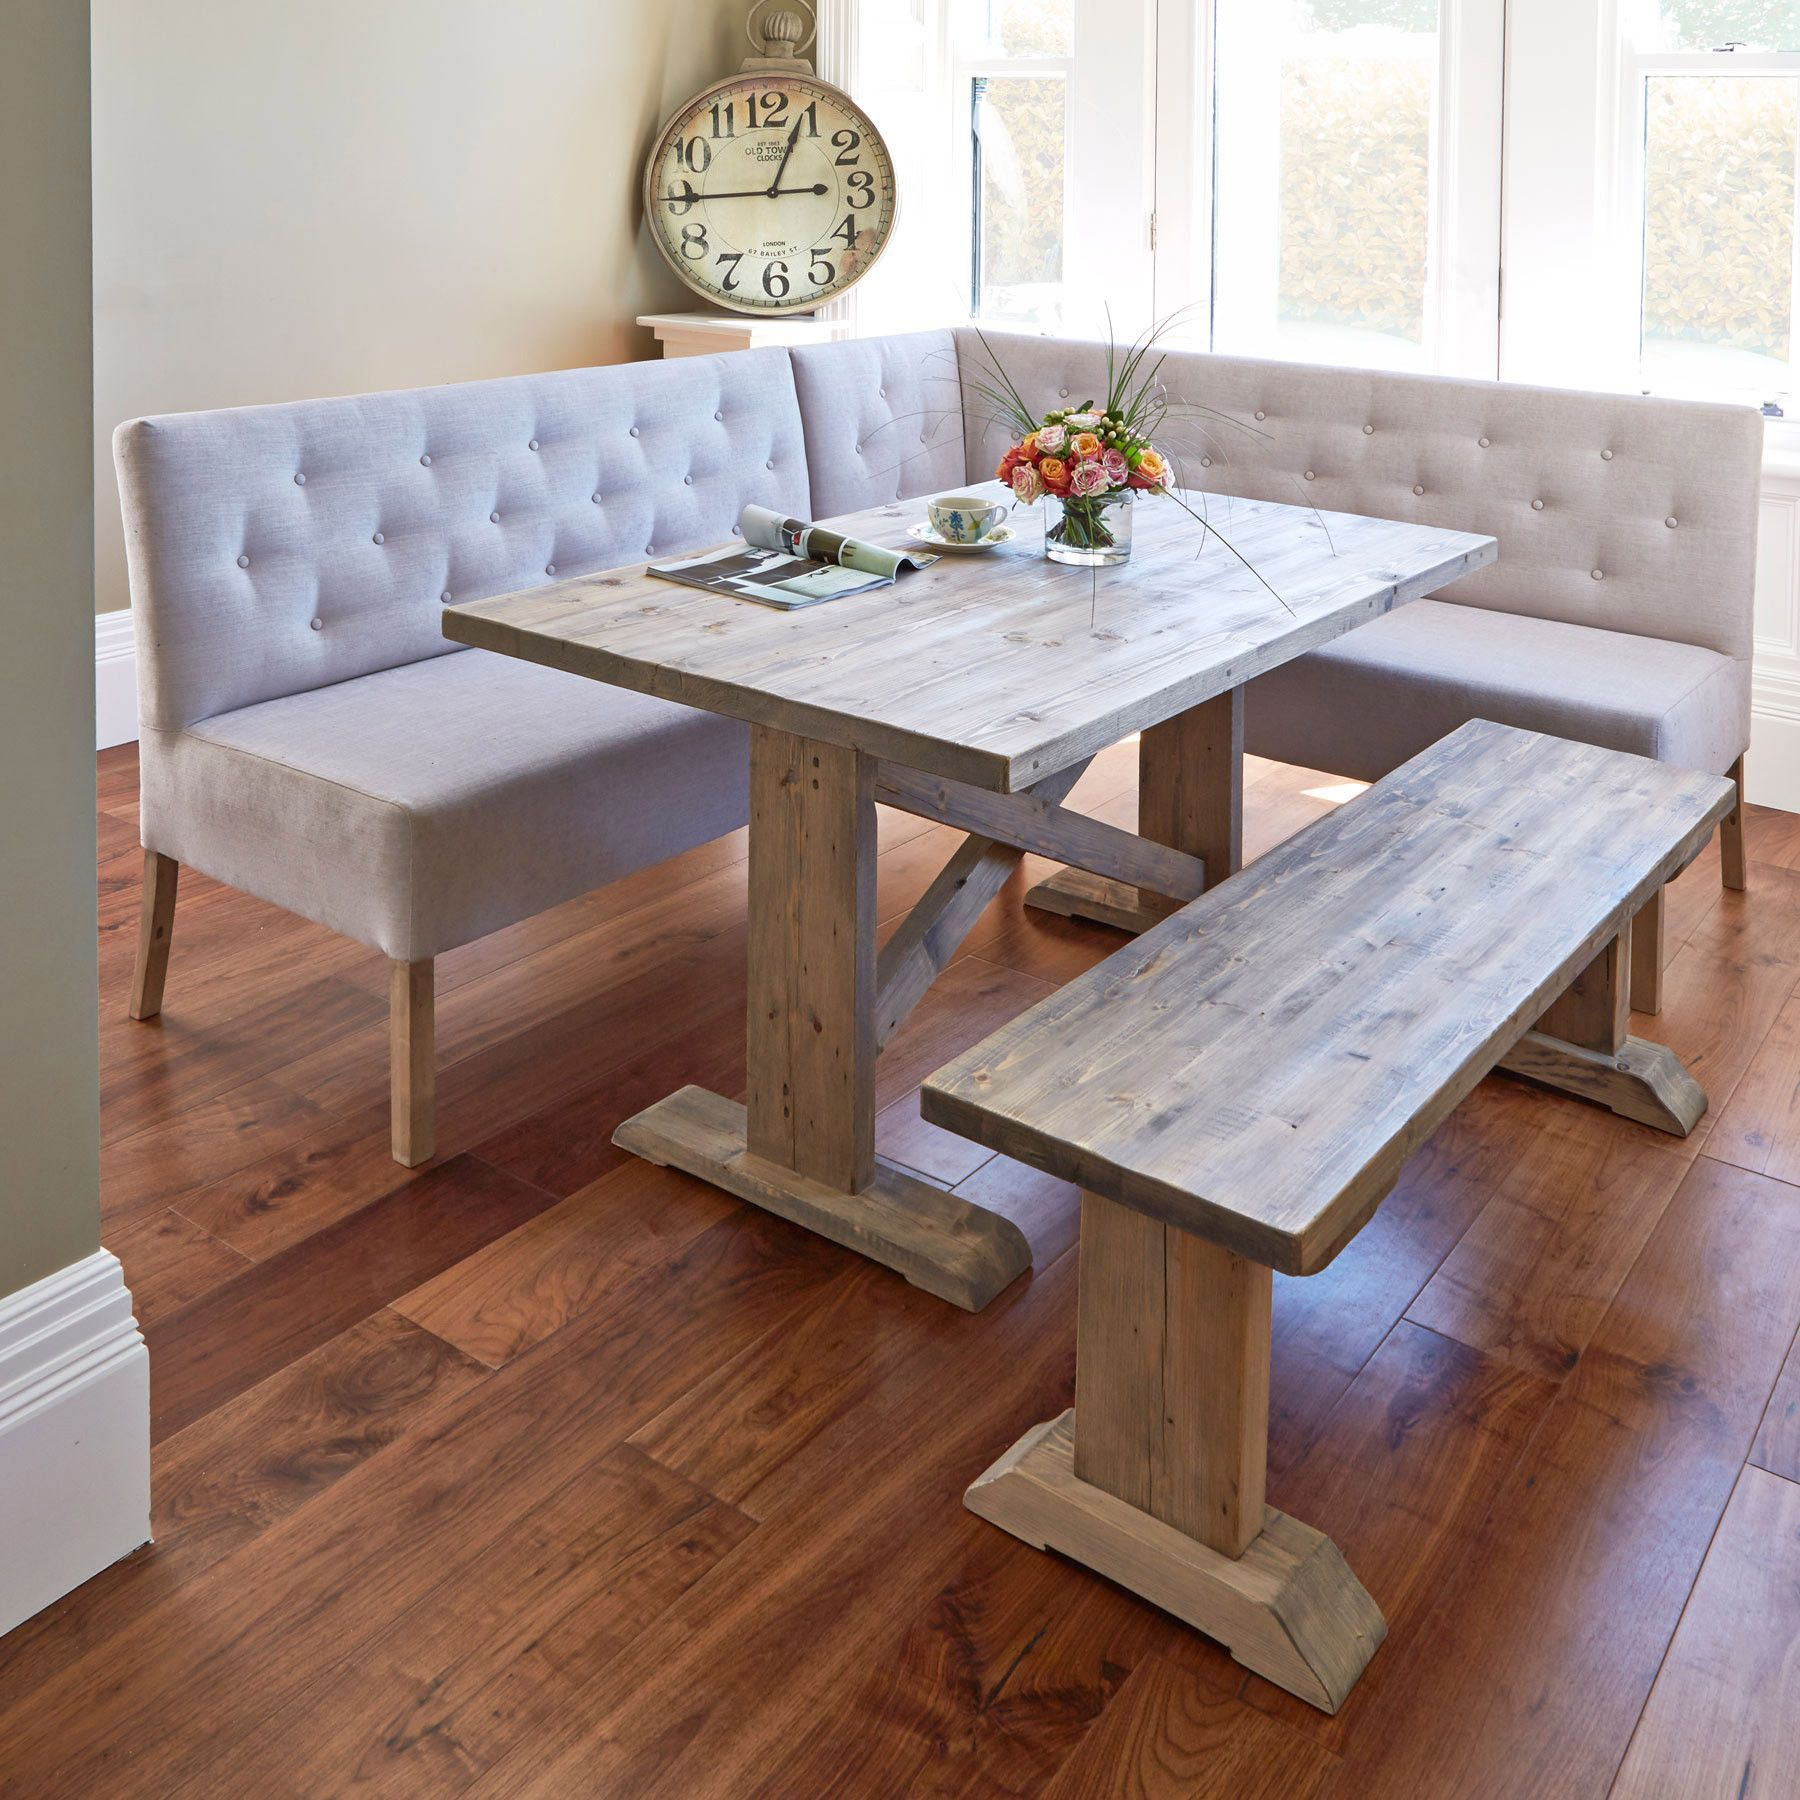 Superior Dining Room Bench Size Only On Shopyhomes Com Small